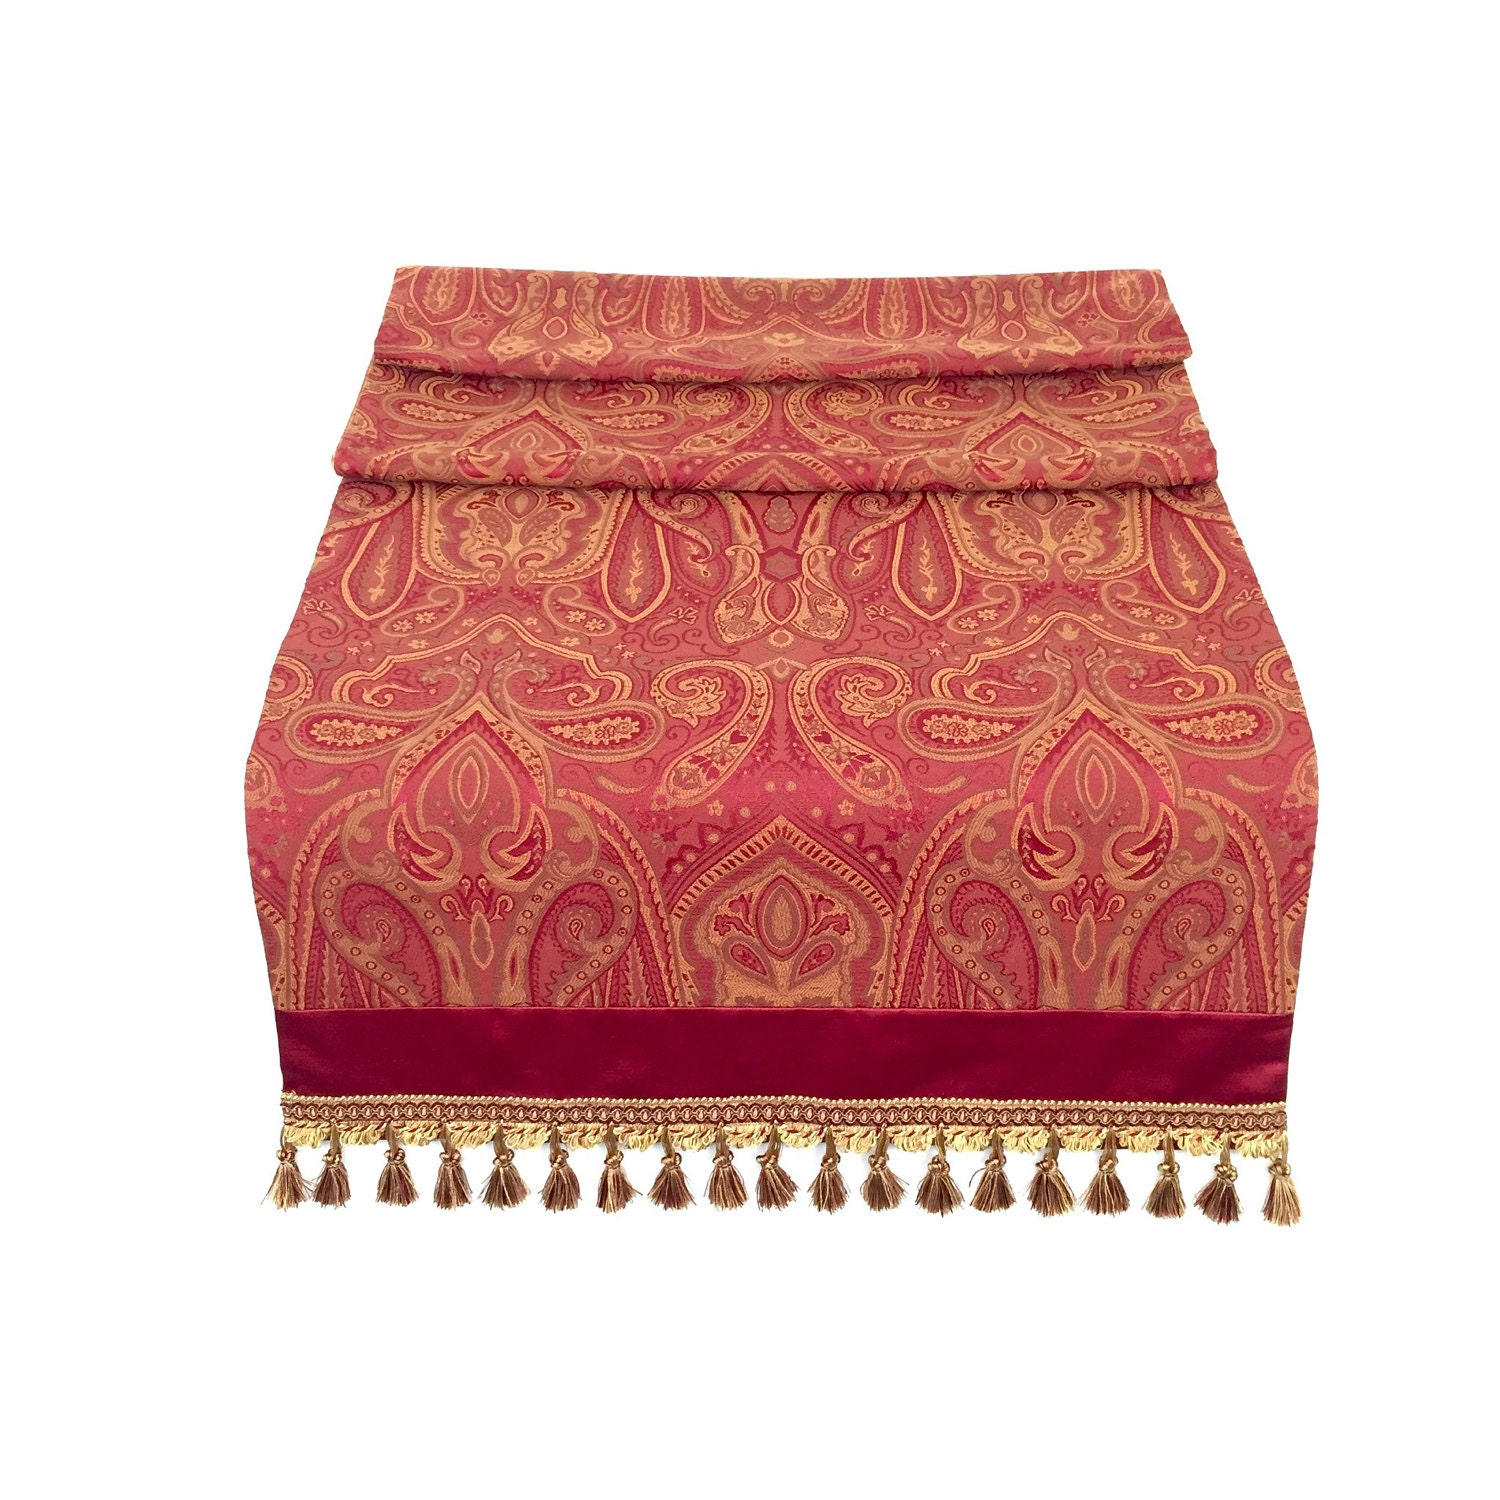 traditional dining room paisley table runner elegant table